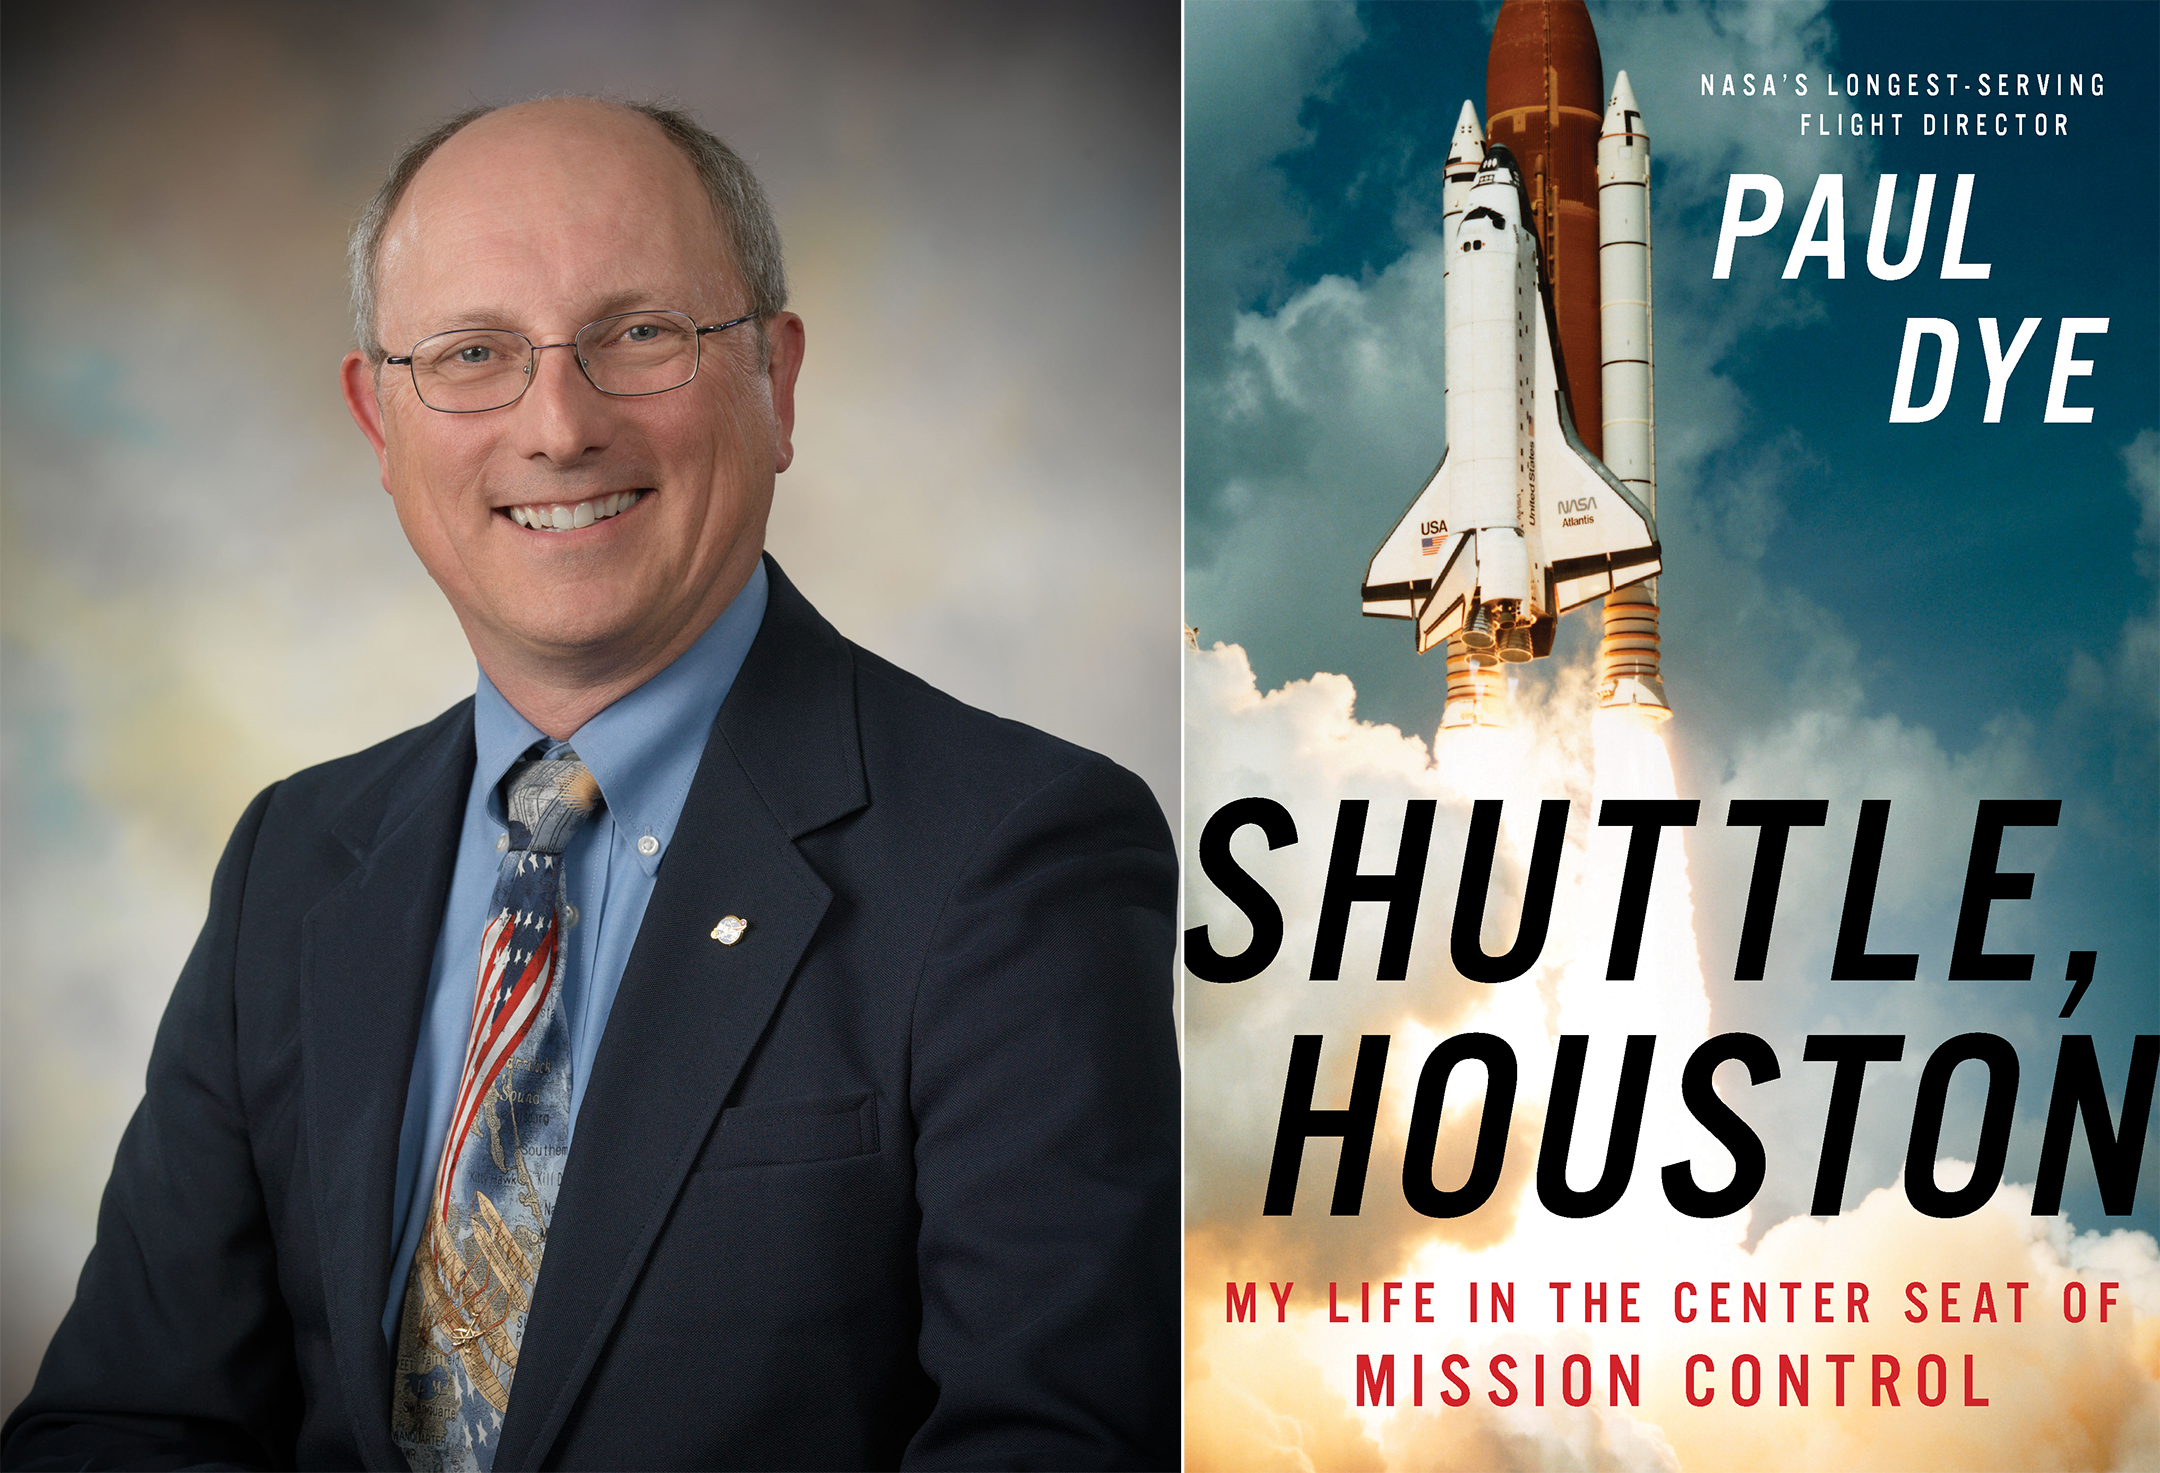 paul dye author photo on the left and the cover of shuttle, houston on the right